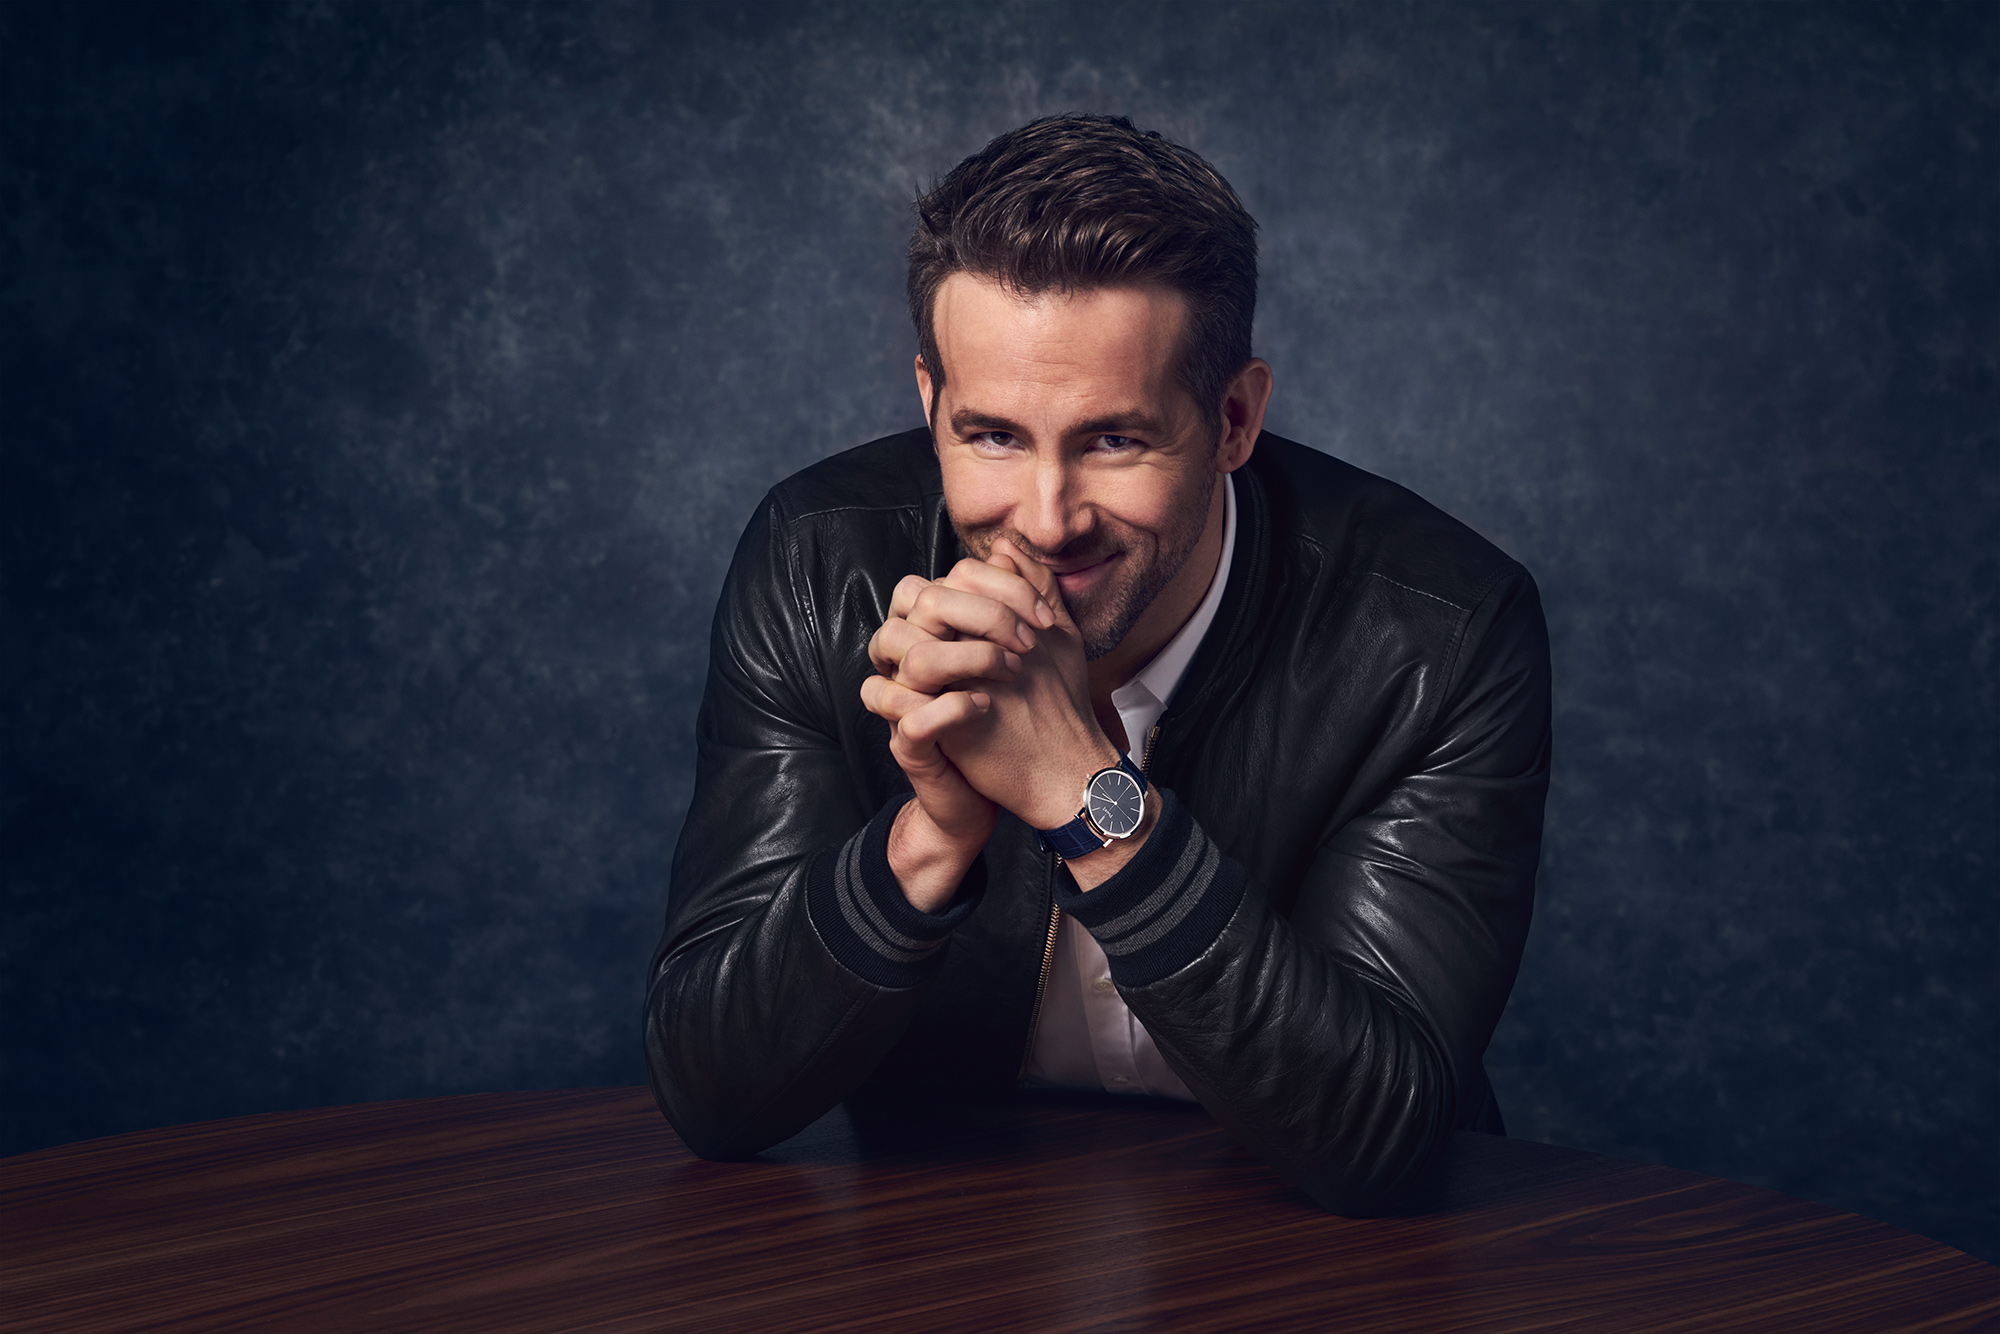 ryan reynolds by james bort Piaget